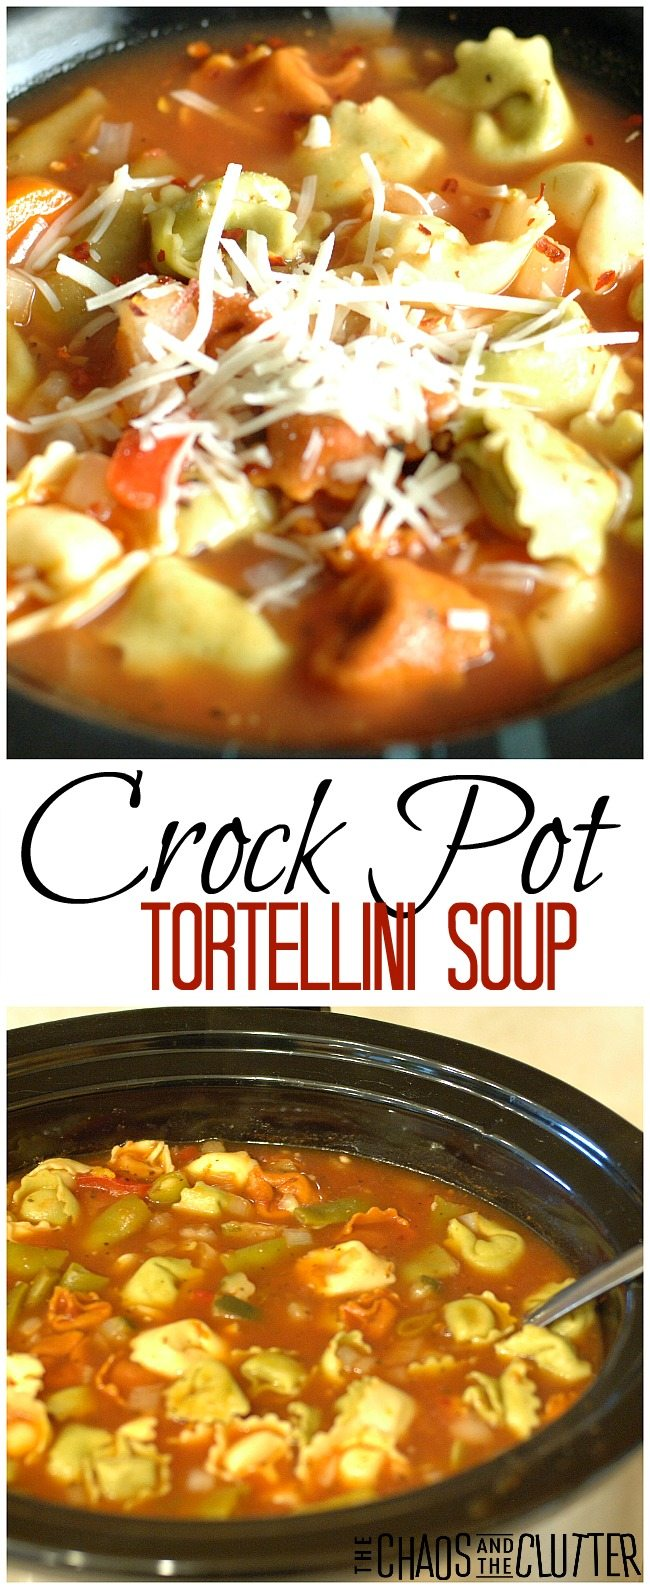 This hearty crock pot tortellini soup can also be made ahead as a freezer meal. #freezermeal #crockpotsoup #tortellinisoup #makeaheadmeals